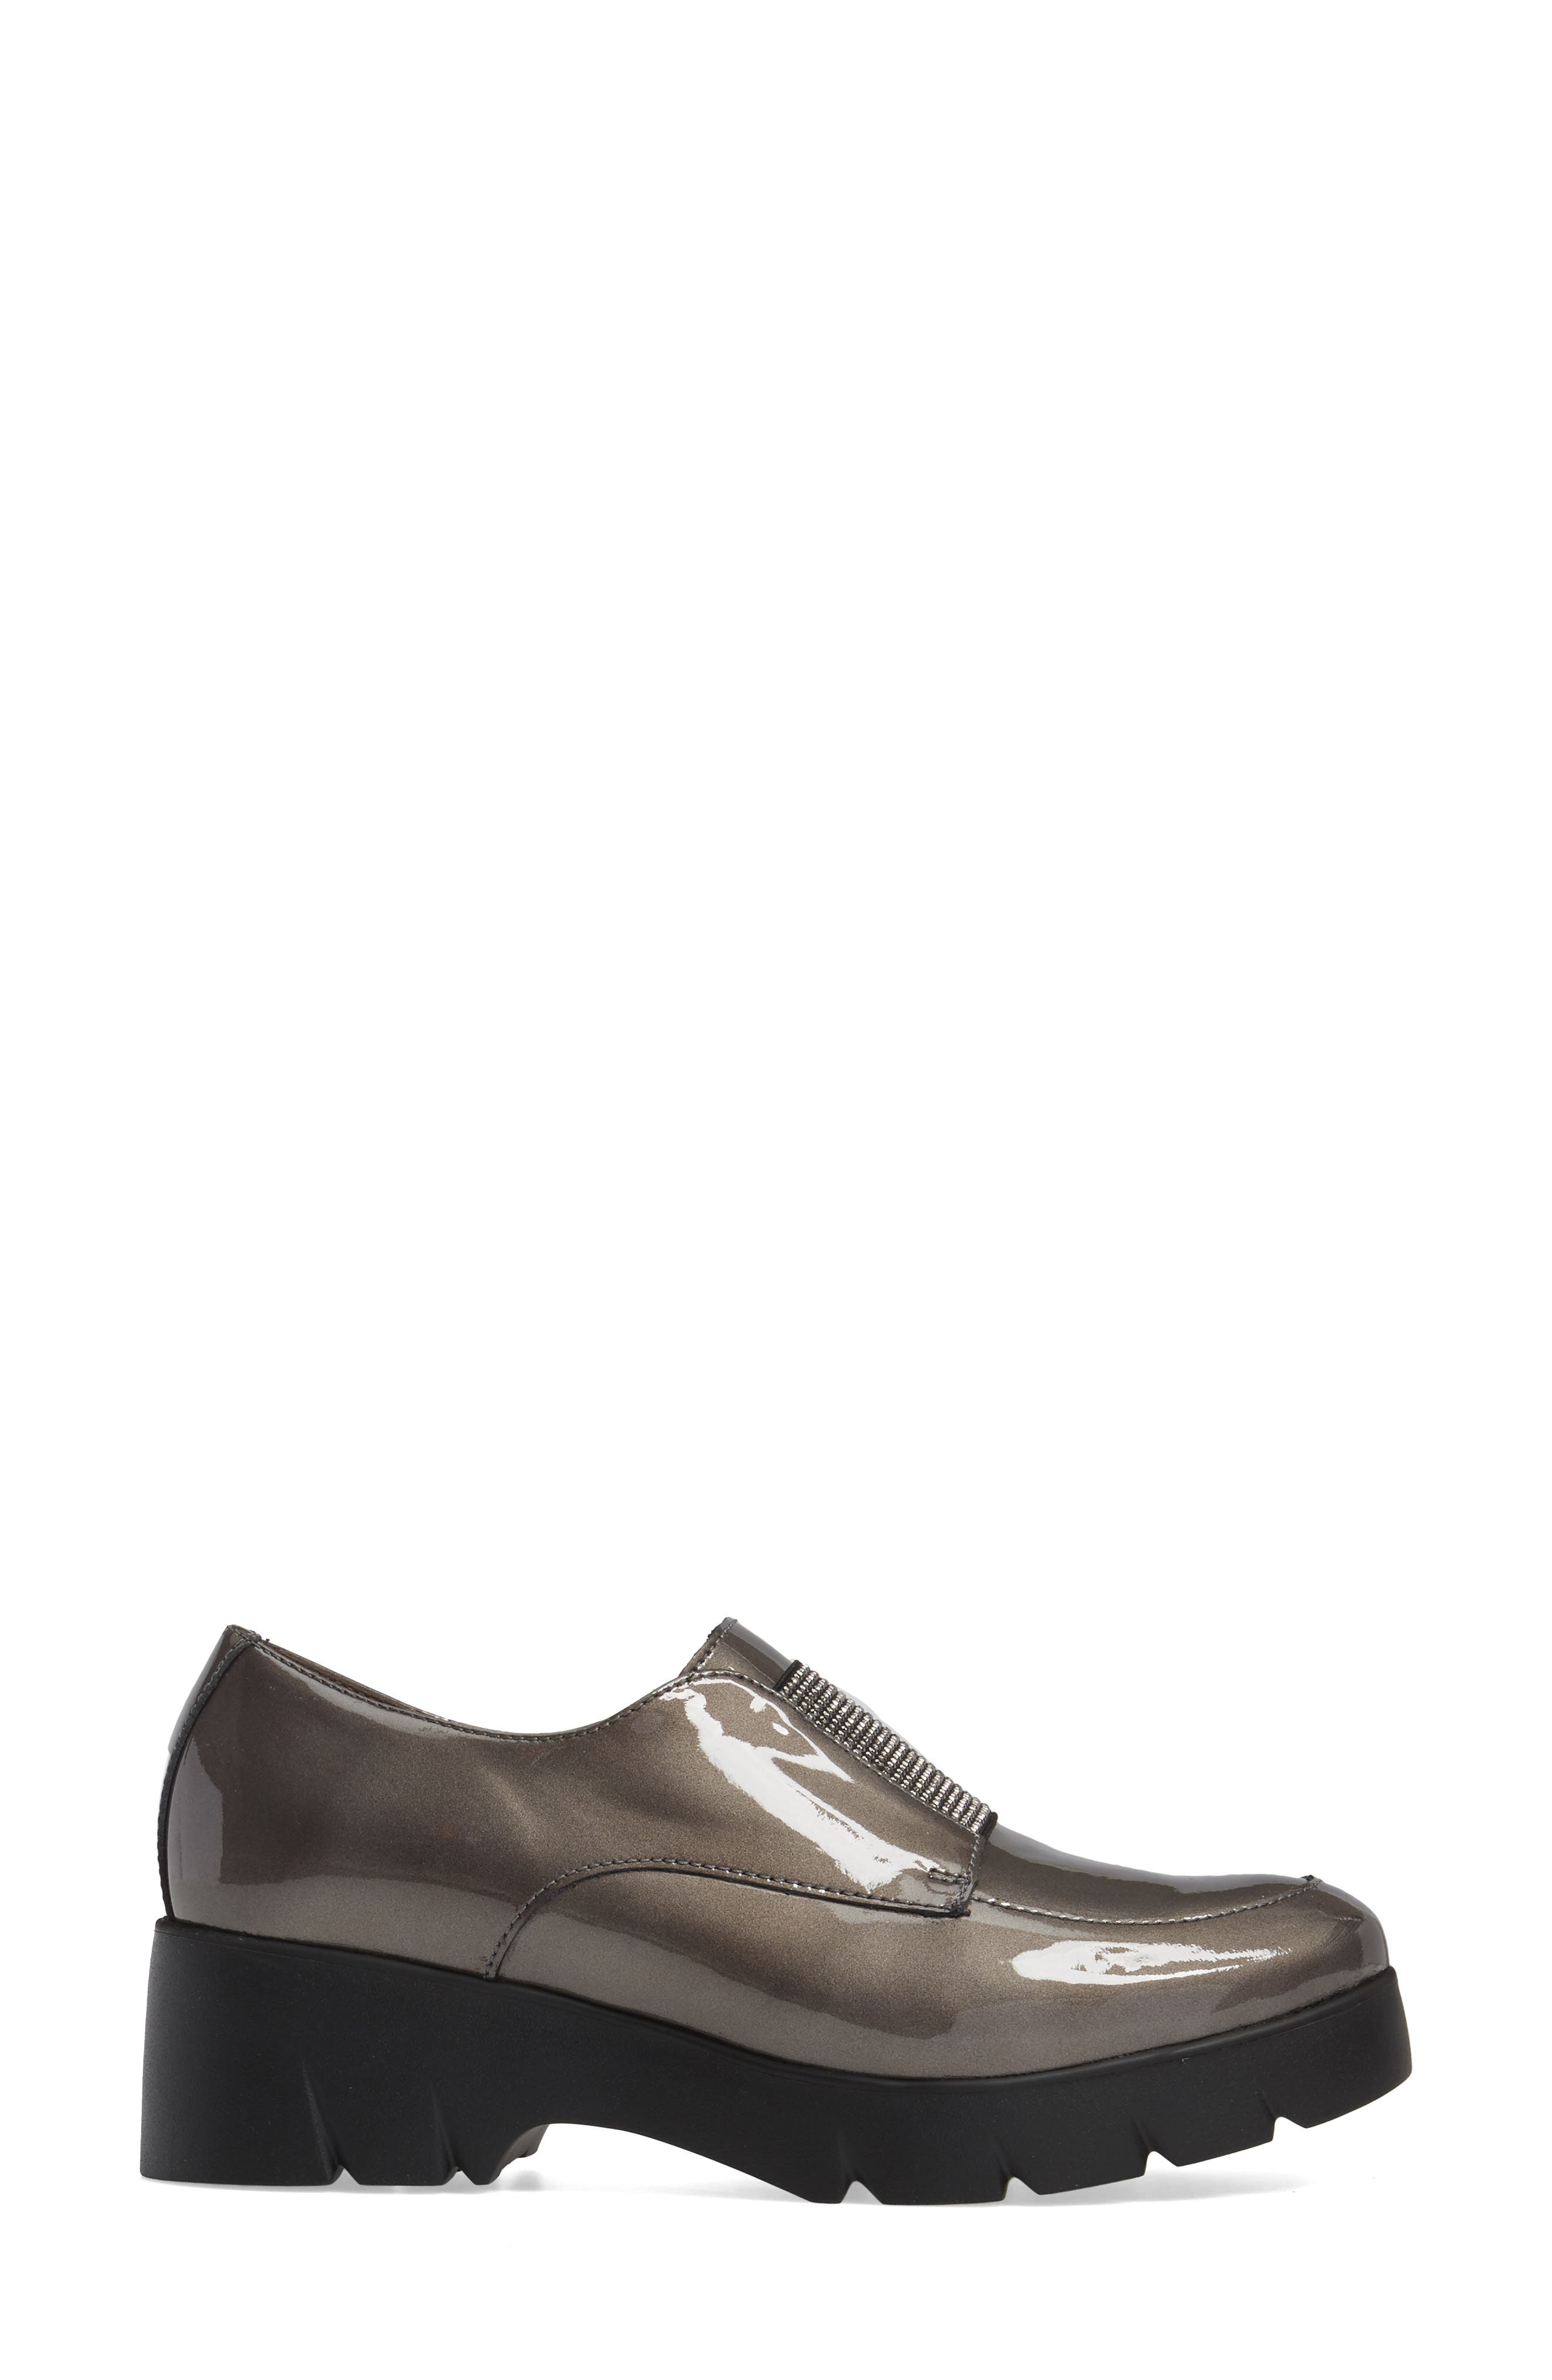 Loafer Flat,                             Alternate thumbnail 3, color,                             Silver Patent Leather